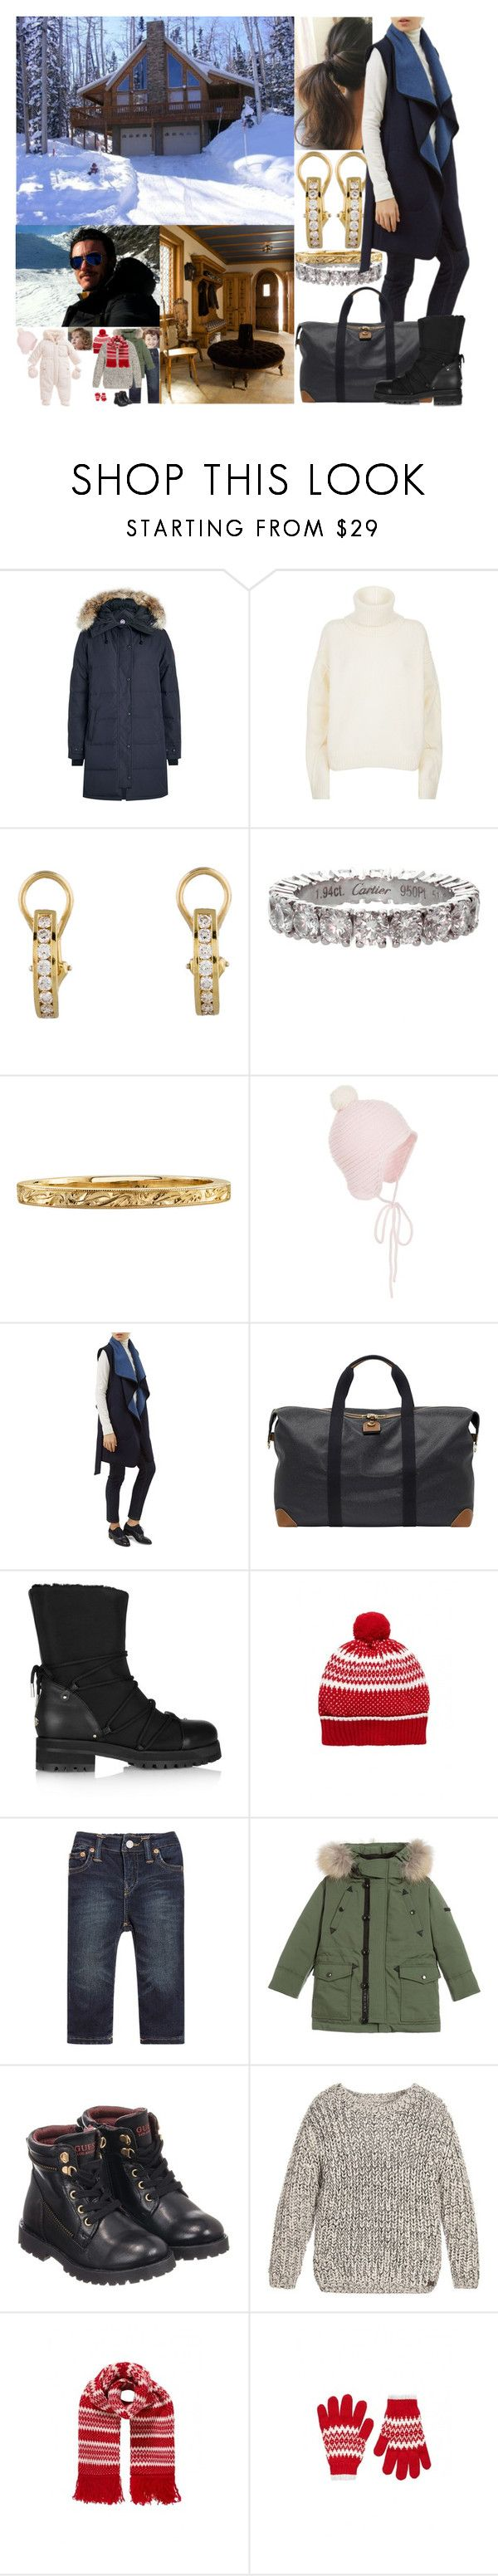 """""""Arriving at the cabin of Fred's family near Aviemore in the Cairngorms in the afternoon"""" by marywindsor ❤ liked on Polyvore featuring Canada Goose, Tory Burch, Tiffany & Co., Cartier, Hobbs, Mulberry, Jimmy Choo, Ralph Lauren, Burberry and GUESS"""